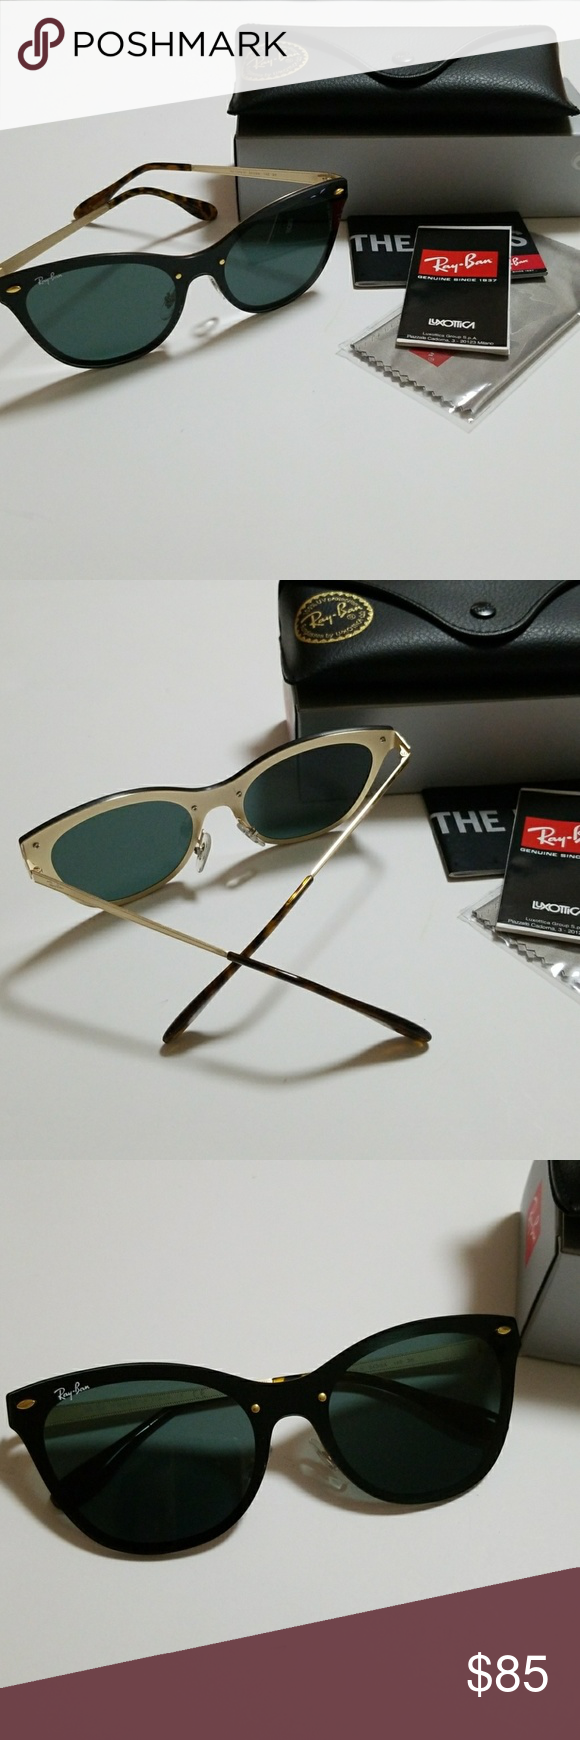 302d13eded0 Ray ban blaze cat- eye .Flat lens RB 3580 N Ray ban Blaze cat eye Flat Lens  color gold